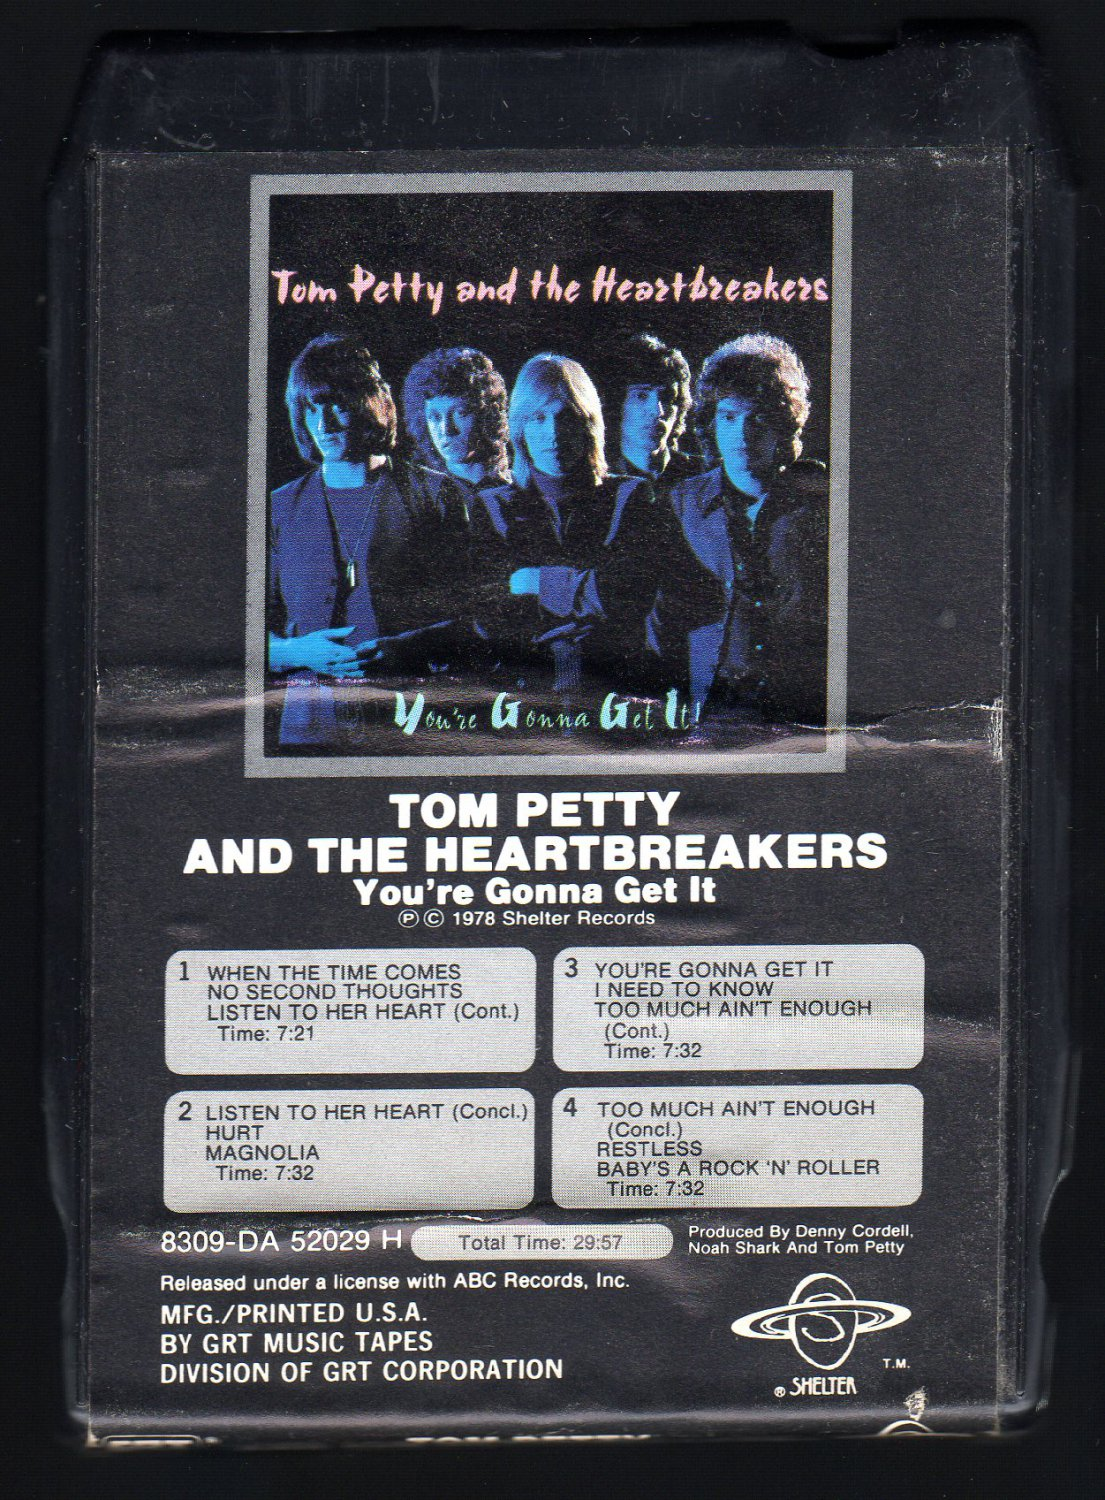 Tom Petty and The Heartbreakers - You're Gonna Get It 1978 GRT SHELTER A29B 8-TRACK TAPE